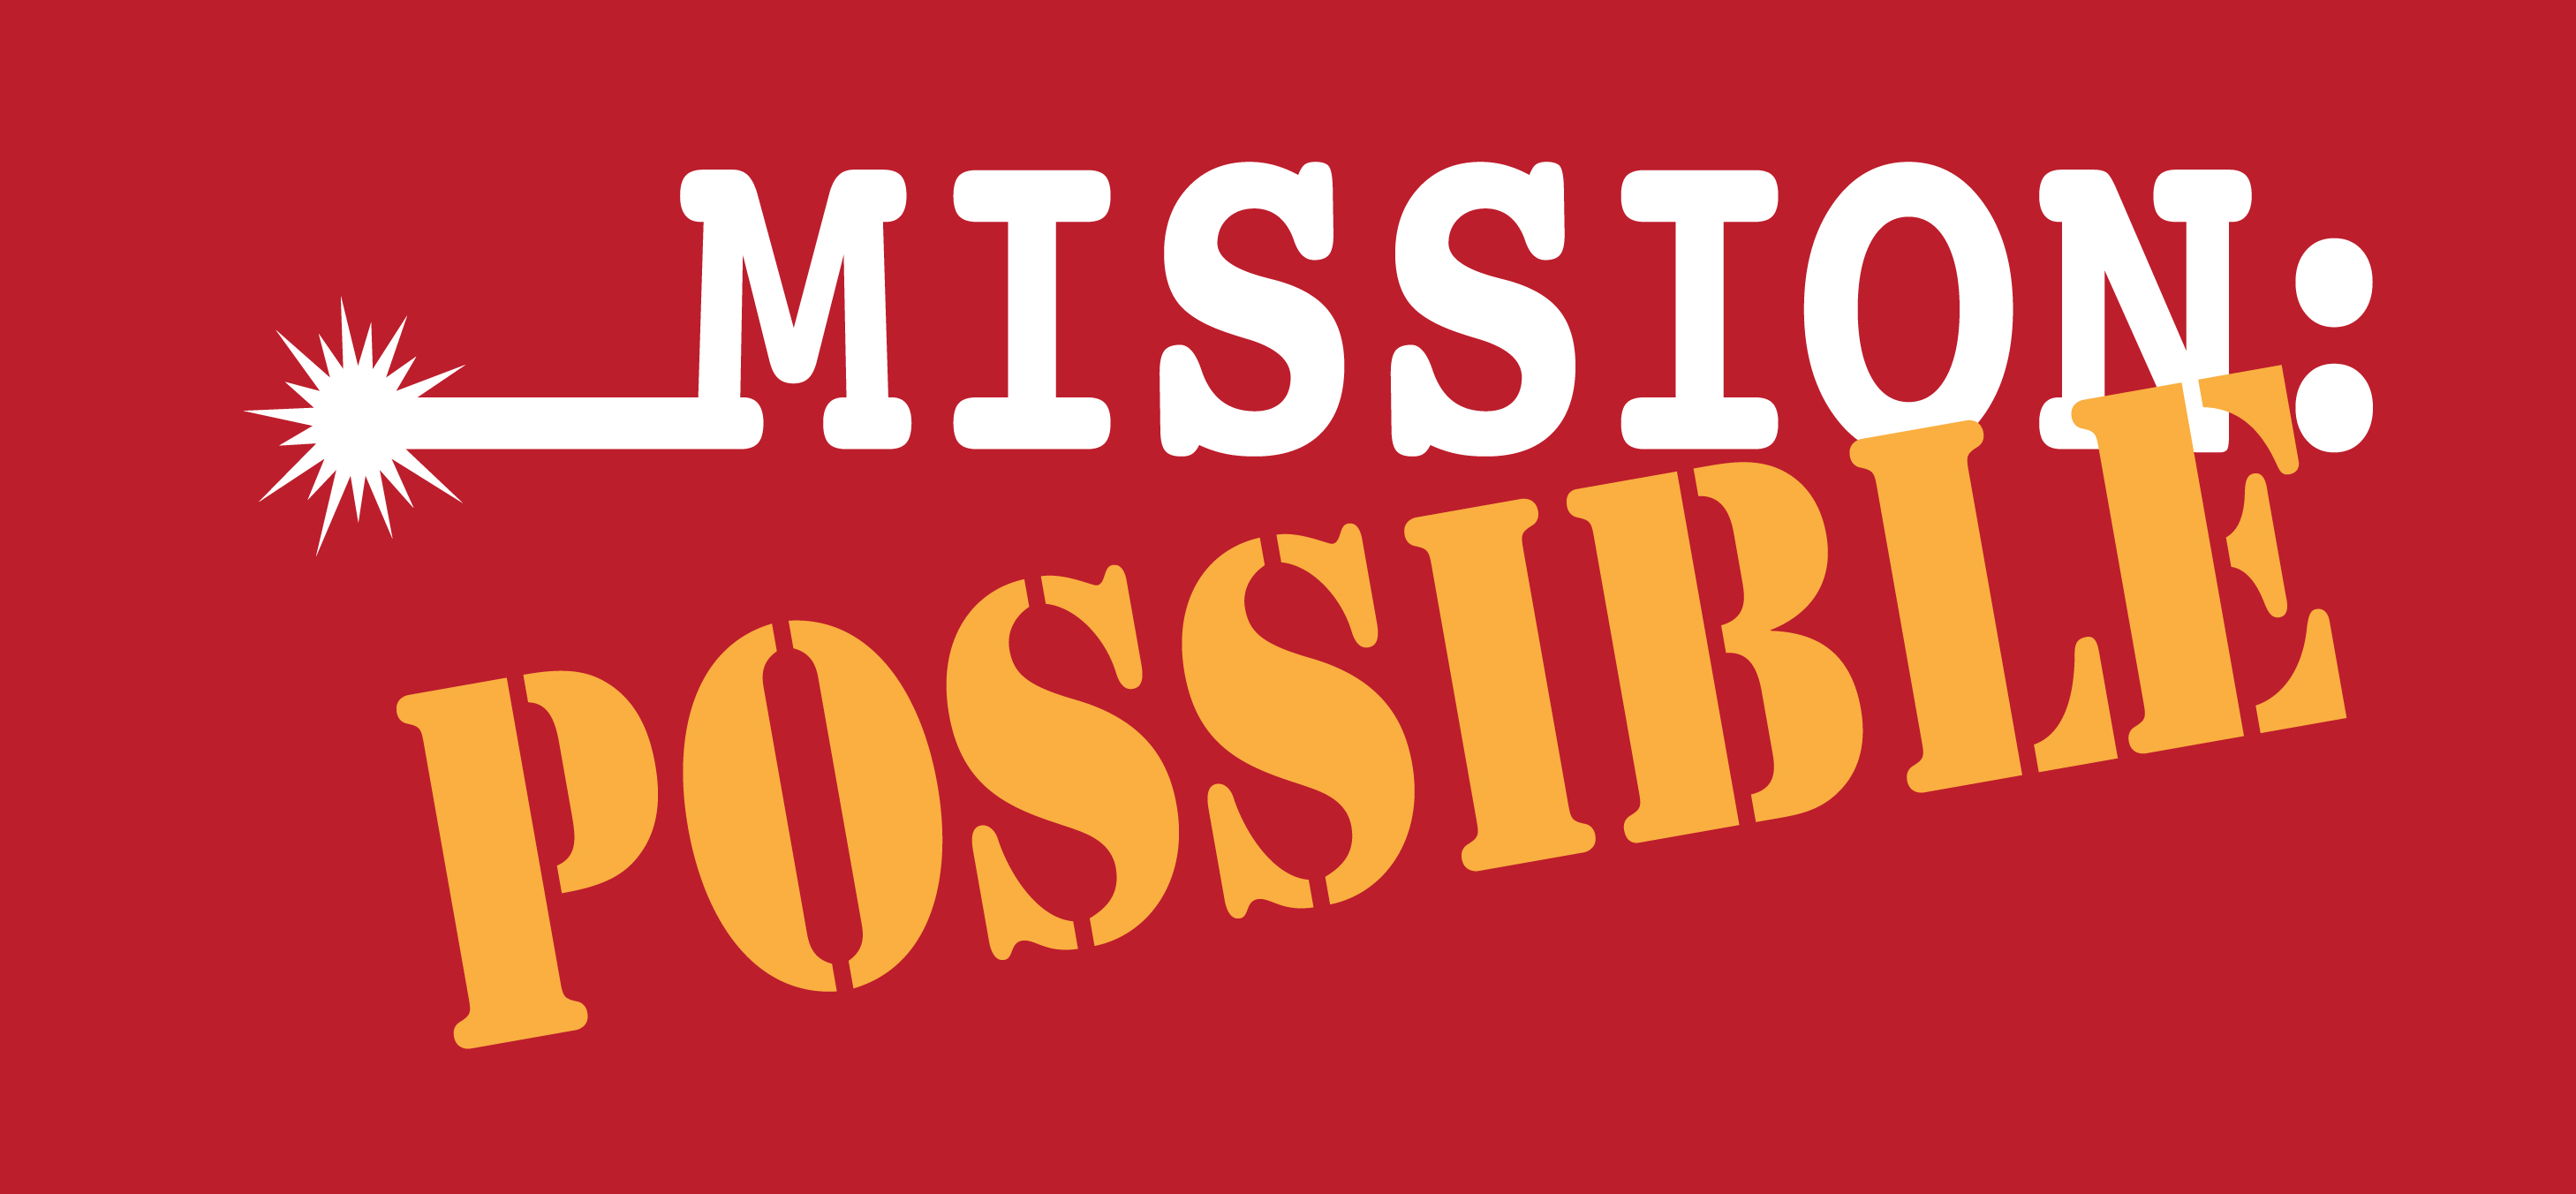 Free Mission Possible Cliparts, Download Free Clip Art, Free Clip.